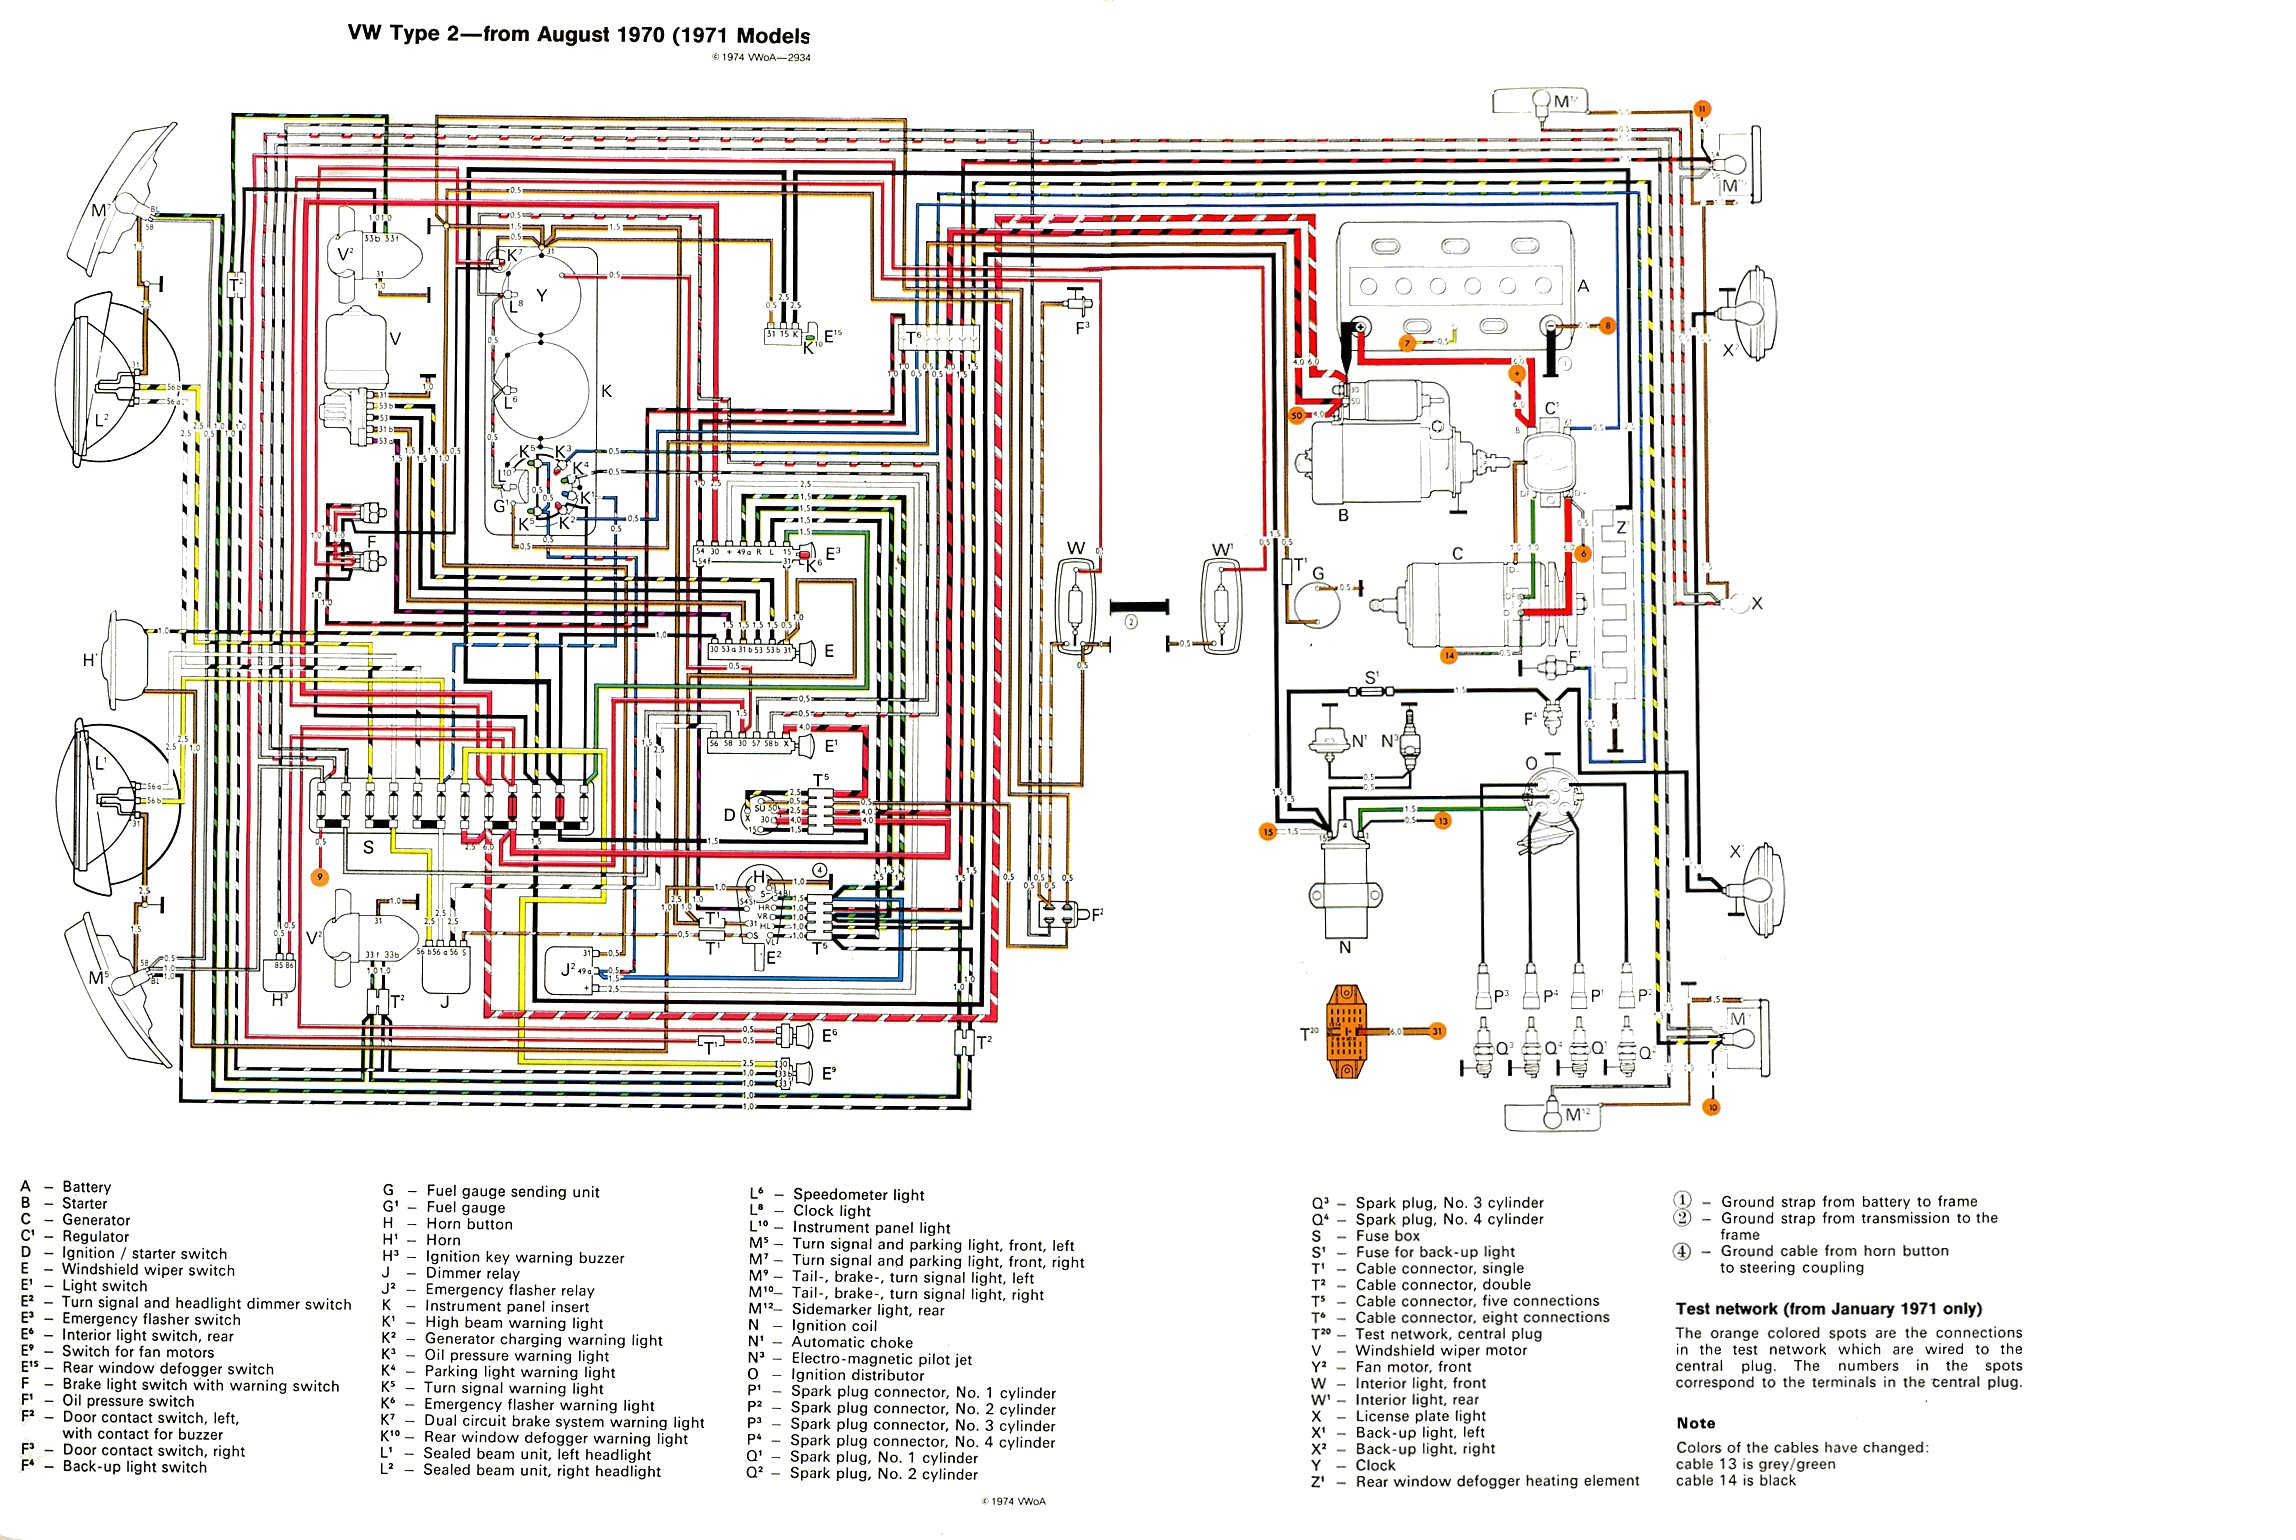 fuse box diagram likewise 2003 chevy impala wiring on astra h wiring diagram used [ 2296 x 1540 Pixel ]